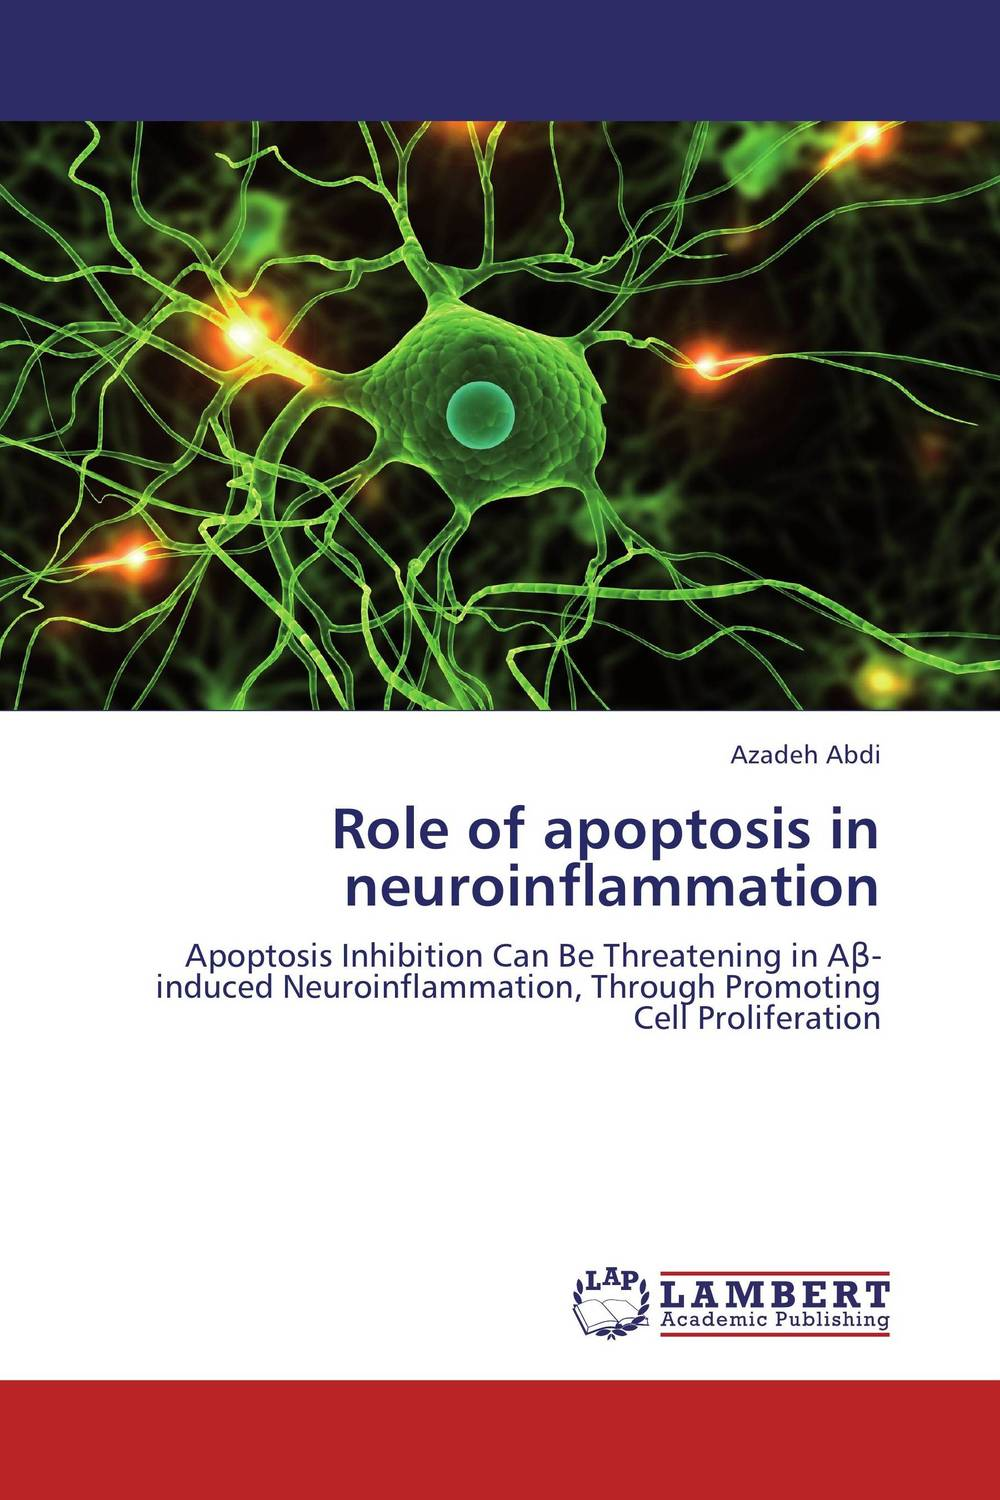 Role of apoptosis in neuroinflammation the role of evaluation as a mechanism for advancing principal practice